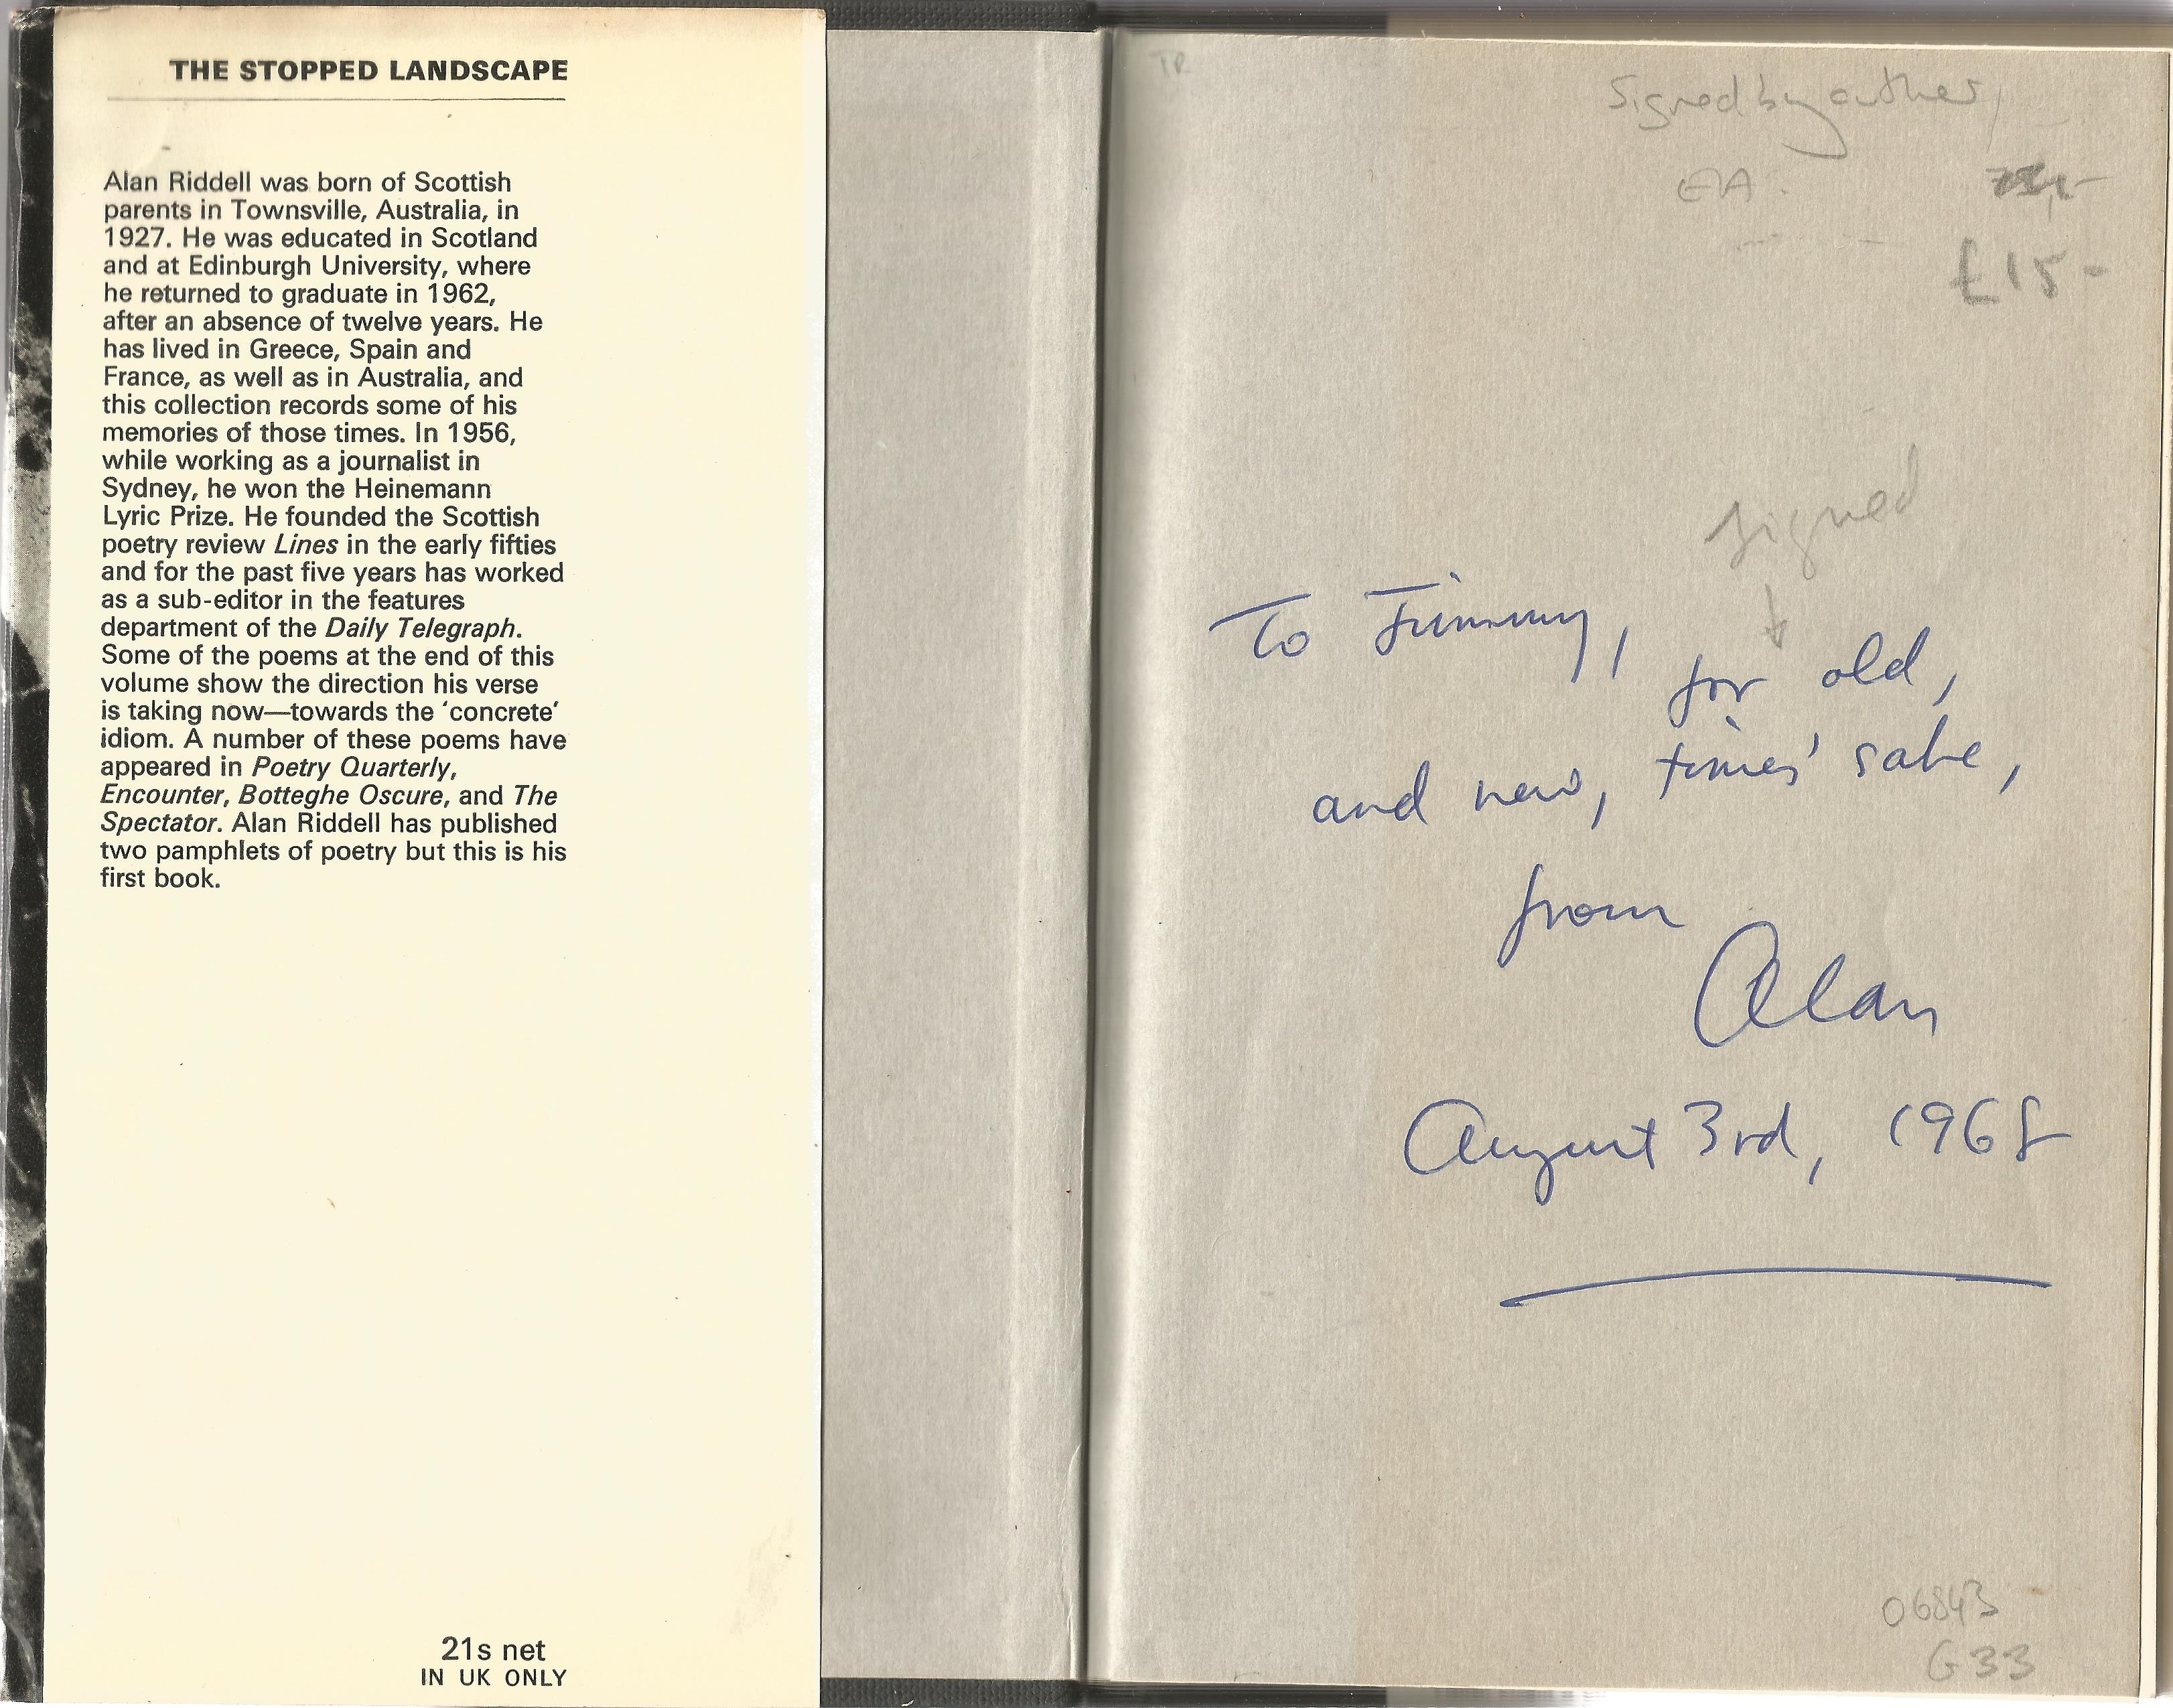 Alan Riddell Hardback Book The Stopped Landscape 1968 signed by the Author on the First Page and - Image 2 of 2